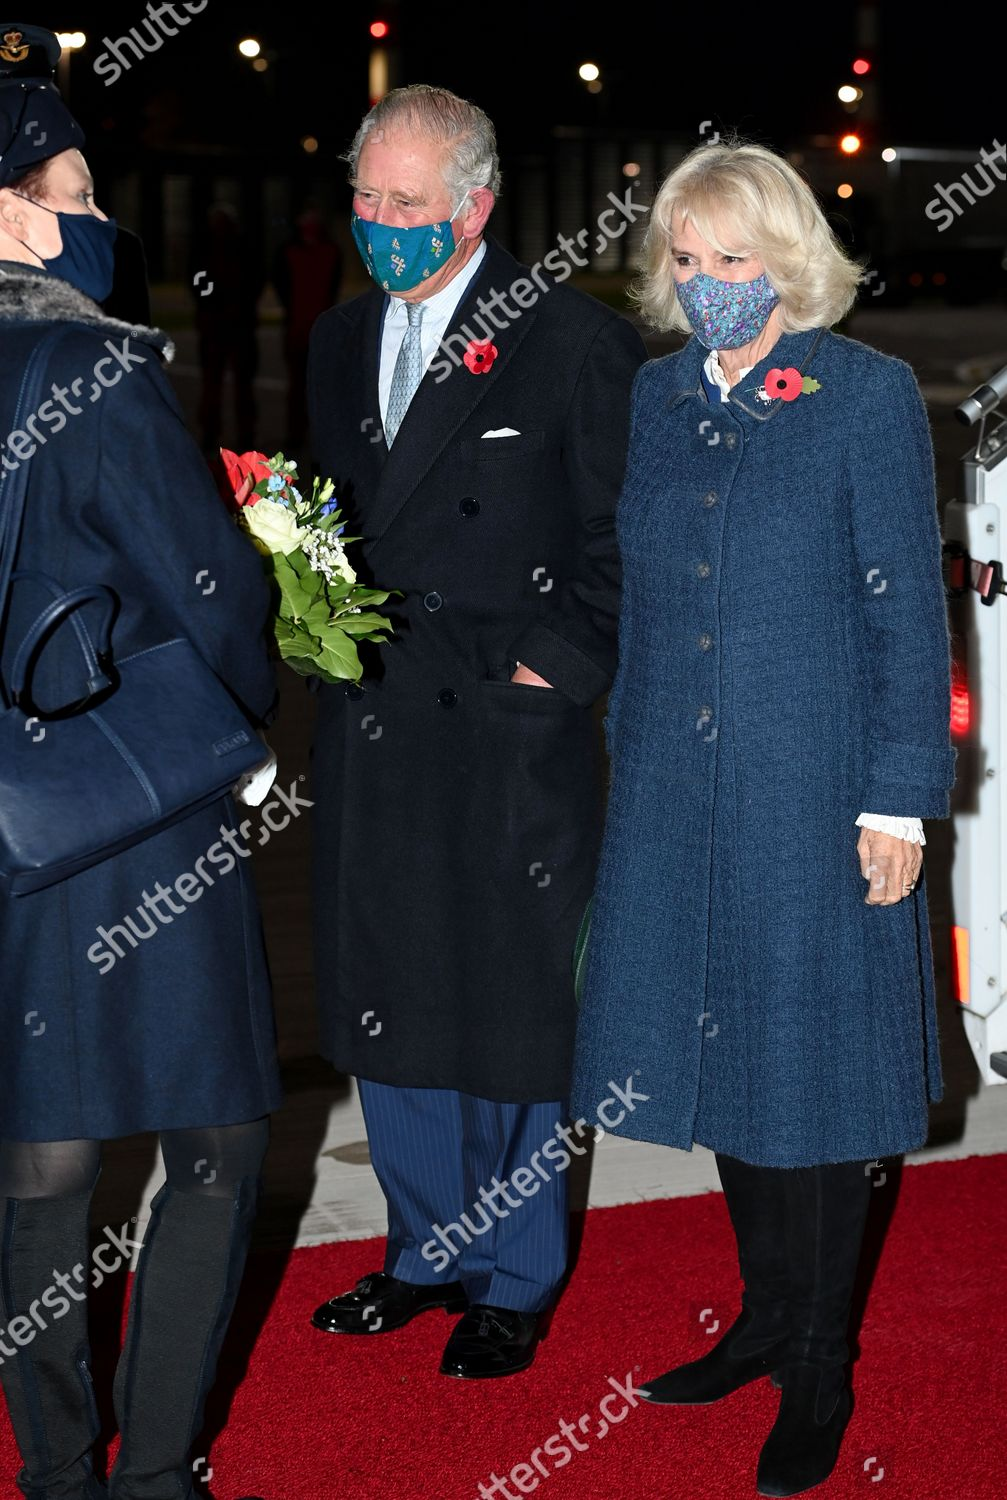 prince-charles-and-camilla-duchess-of-cornwall-visit-to-berlin-germany-shutterstock-editorial-11016152y.jpg